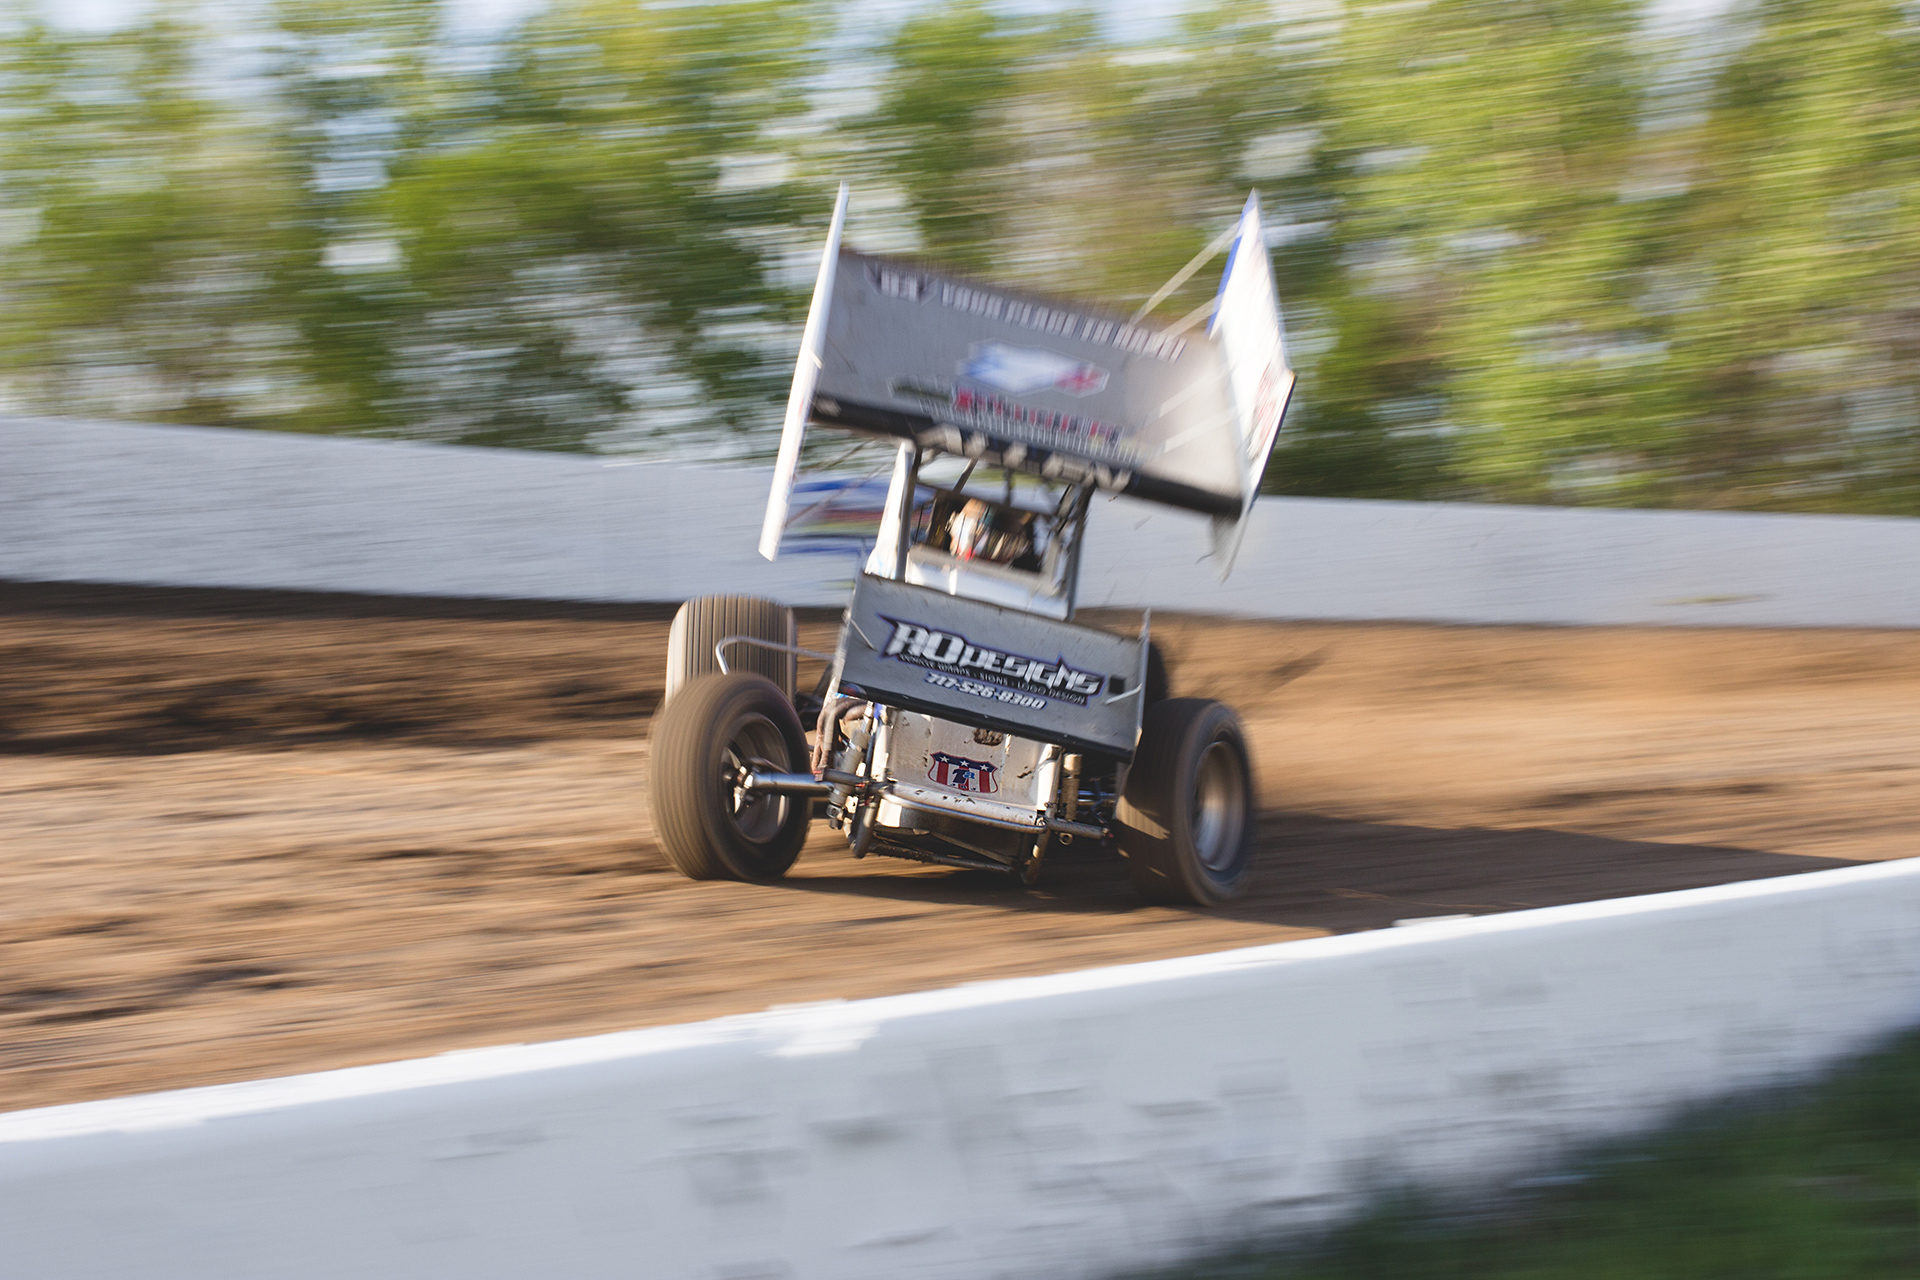 Jacob Allen qualified 10th fastest and placed 6th in his heat to qualify for The World of Outlaws main event at Weedsport Speedway, NY. ( Jeffrey Turford / TDP )